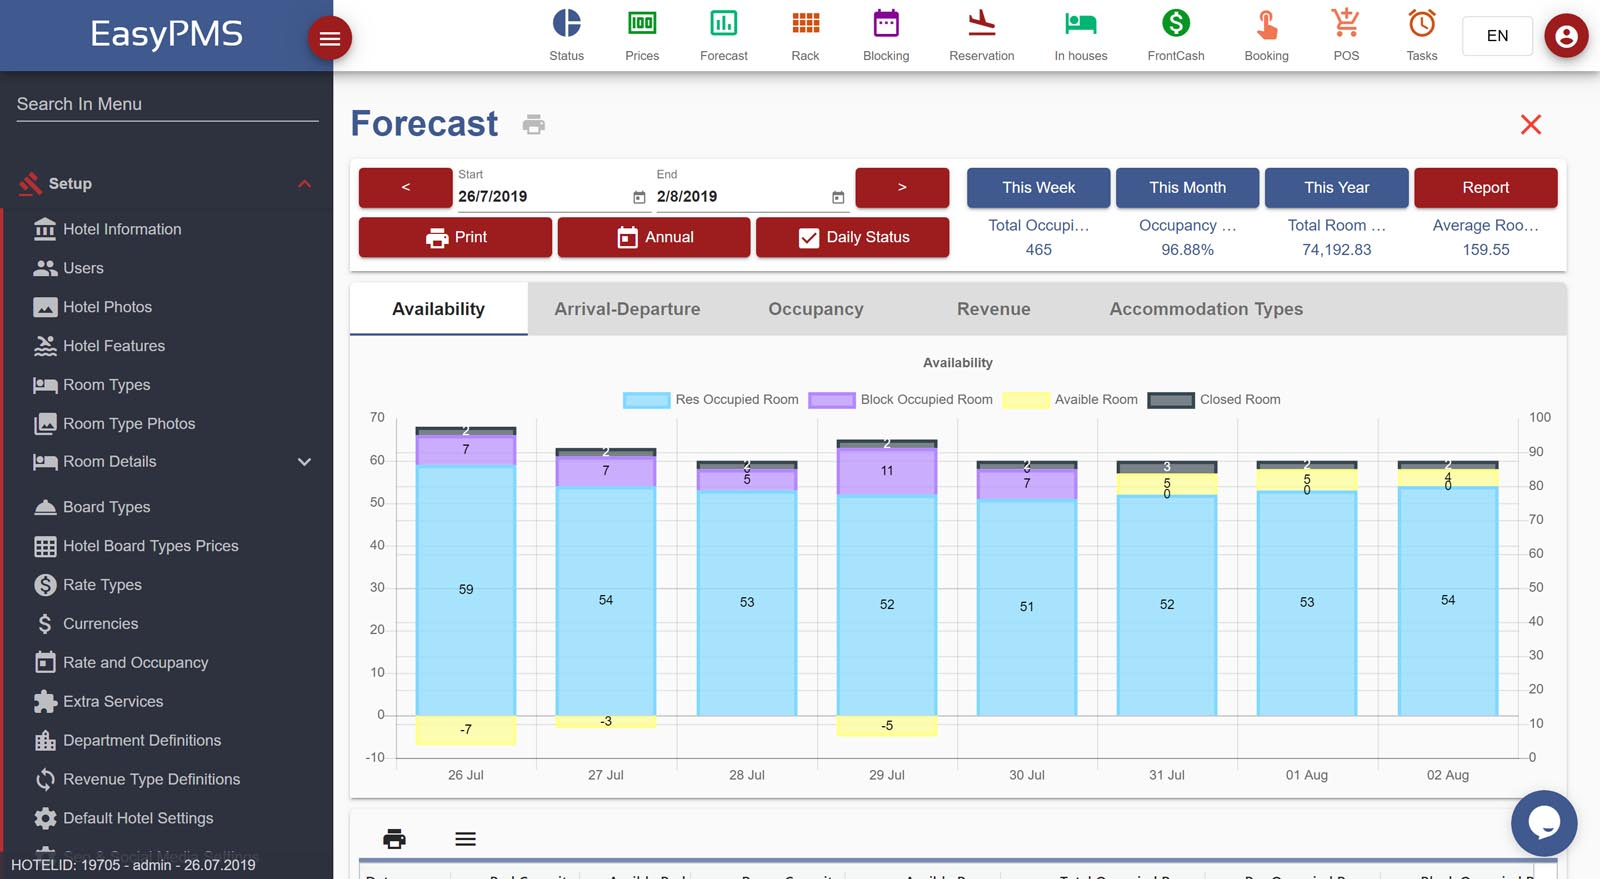 easypms hotel software Forecast Report